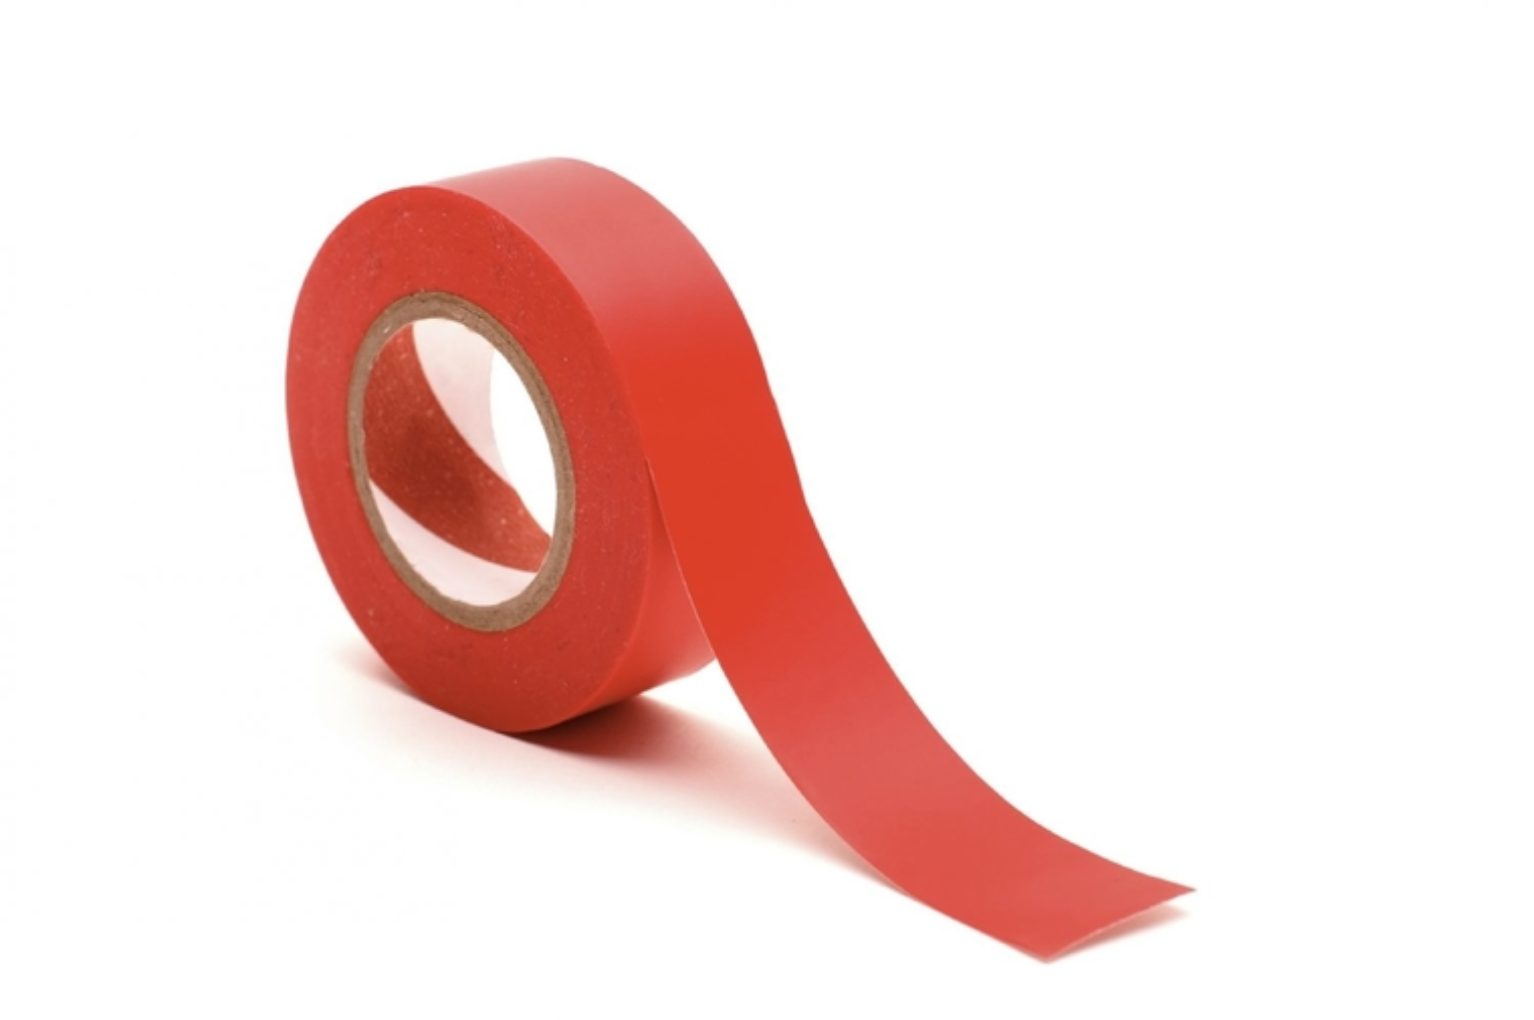 When It Comes To Red Tape Reduction, There's Reason To Be Hopeful